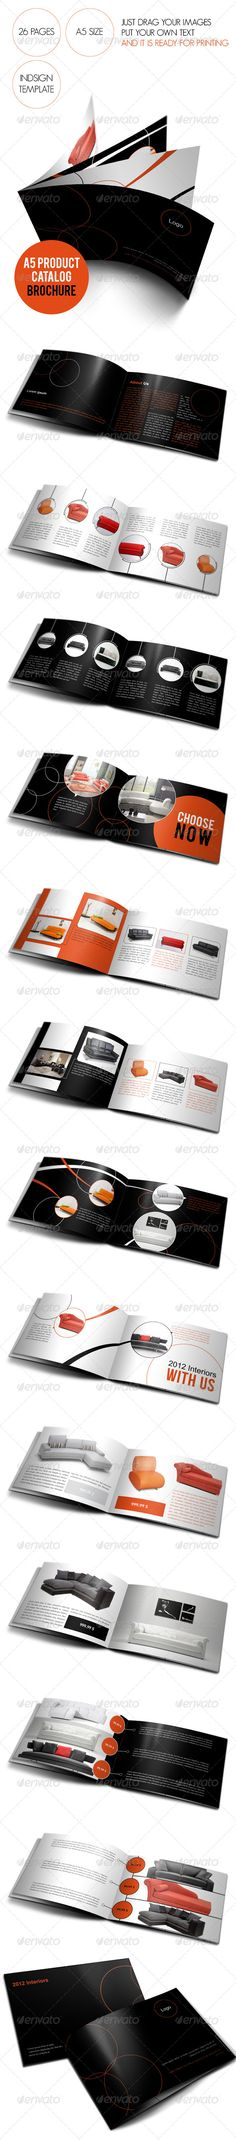 Realistic Graphic DOWNLOAD (.ai, .psd) :: http://jquery-css.de/pinterest-itmid-1005089132i.html ... A5 Product Catalog  Brochure ...  a5, booklet, brochure, catalogue, clean, cmyk, colorful, creative, design, idml, indd, indesign, interior, modern, project, showcase, template  ... Realistic Photo Graphic Print Obejct Business Web Elements Illustration Design Templates ... DOWNLOAD :: http://jquery-css.de/pinterest-itmid-1005089132i.html